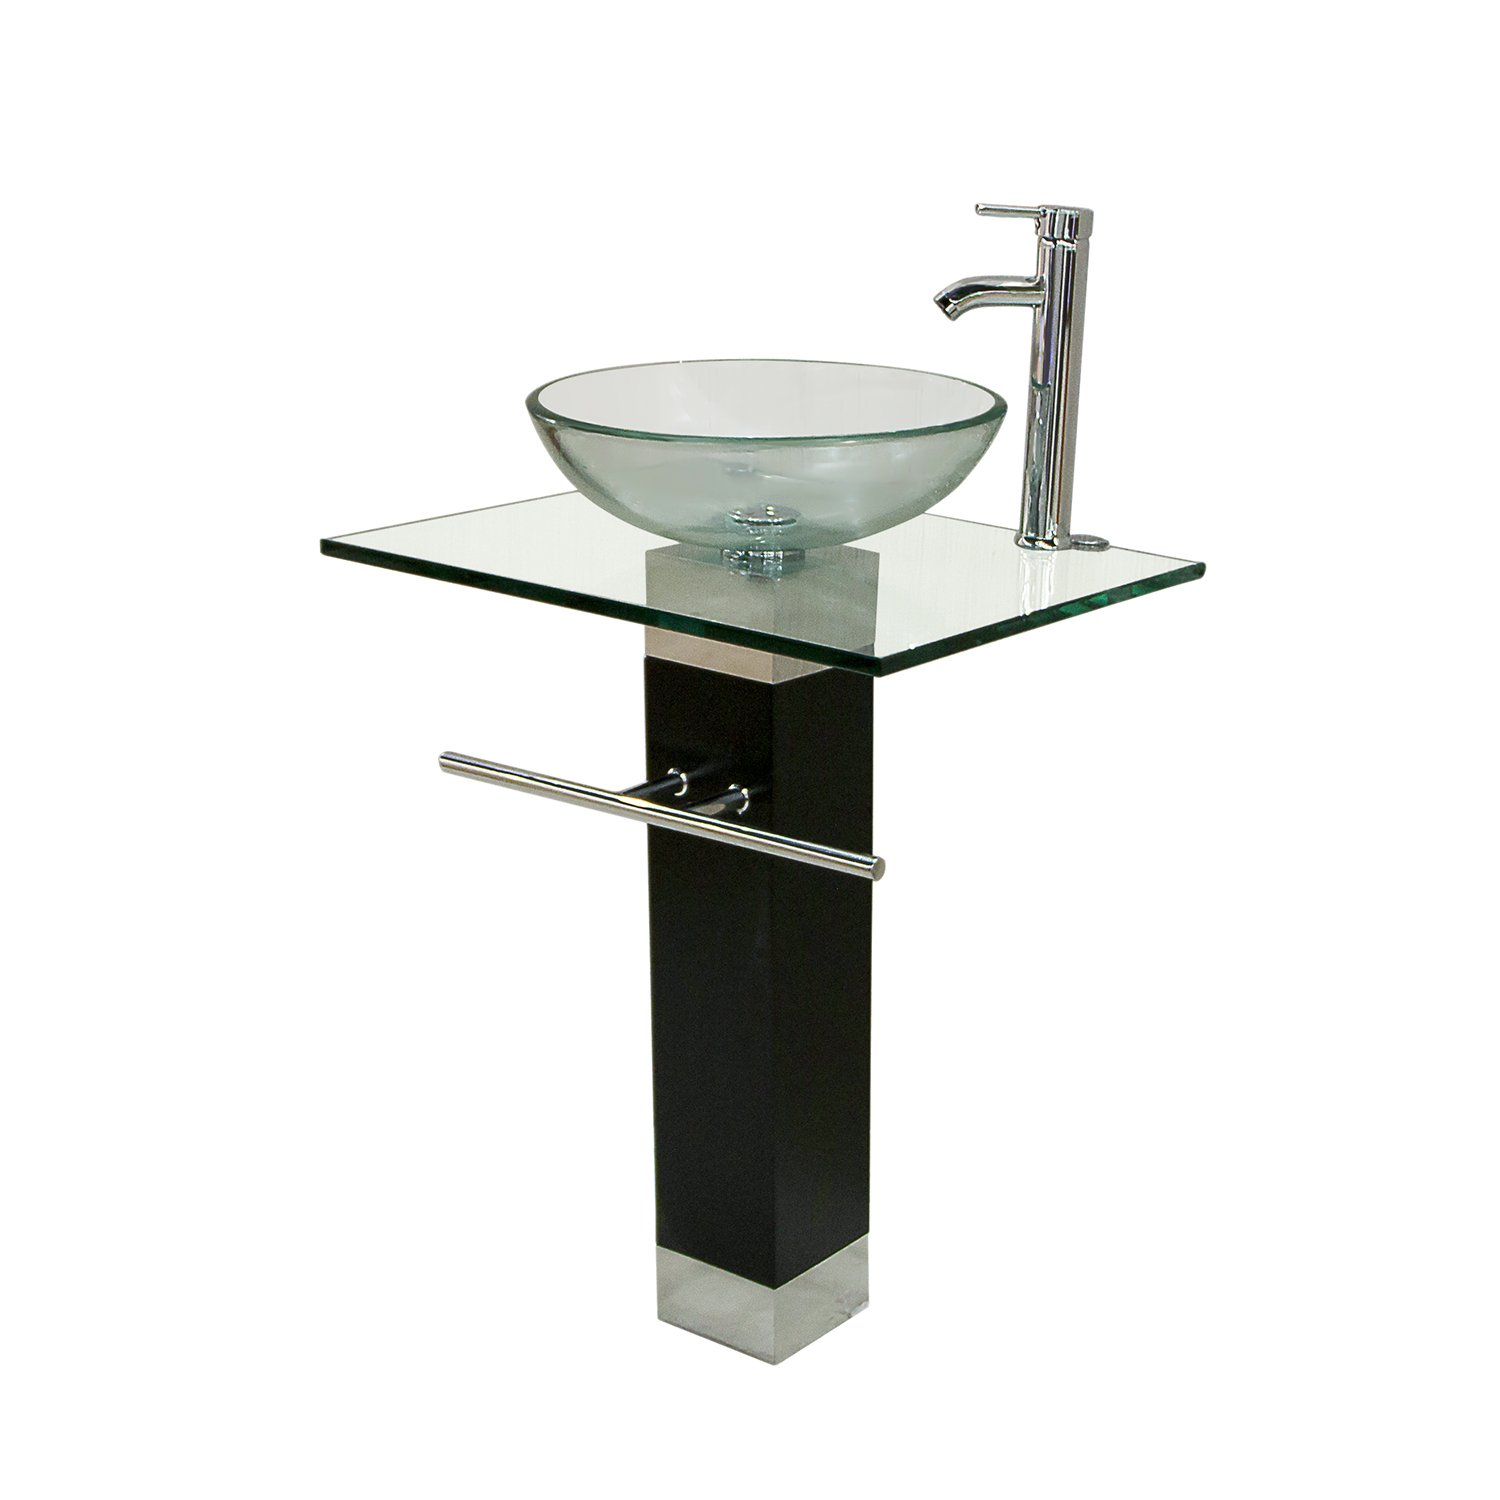 23 Inch Modern Bathroom Vanities Tempred Glass Design Vessel Sink